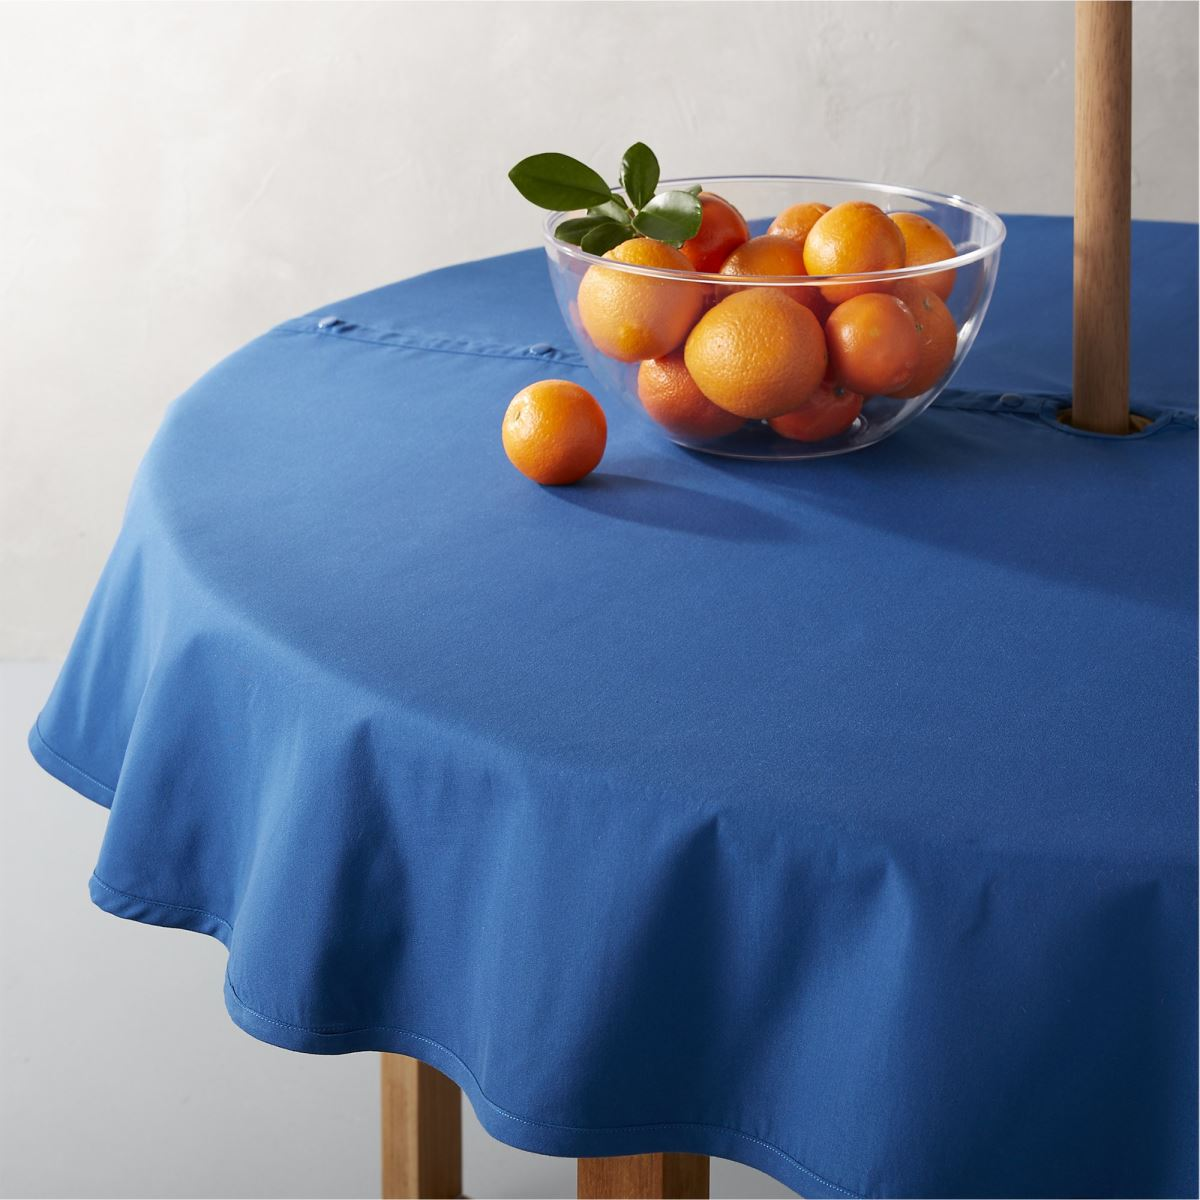 Umbrella tablecloth from Crate & Barrel